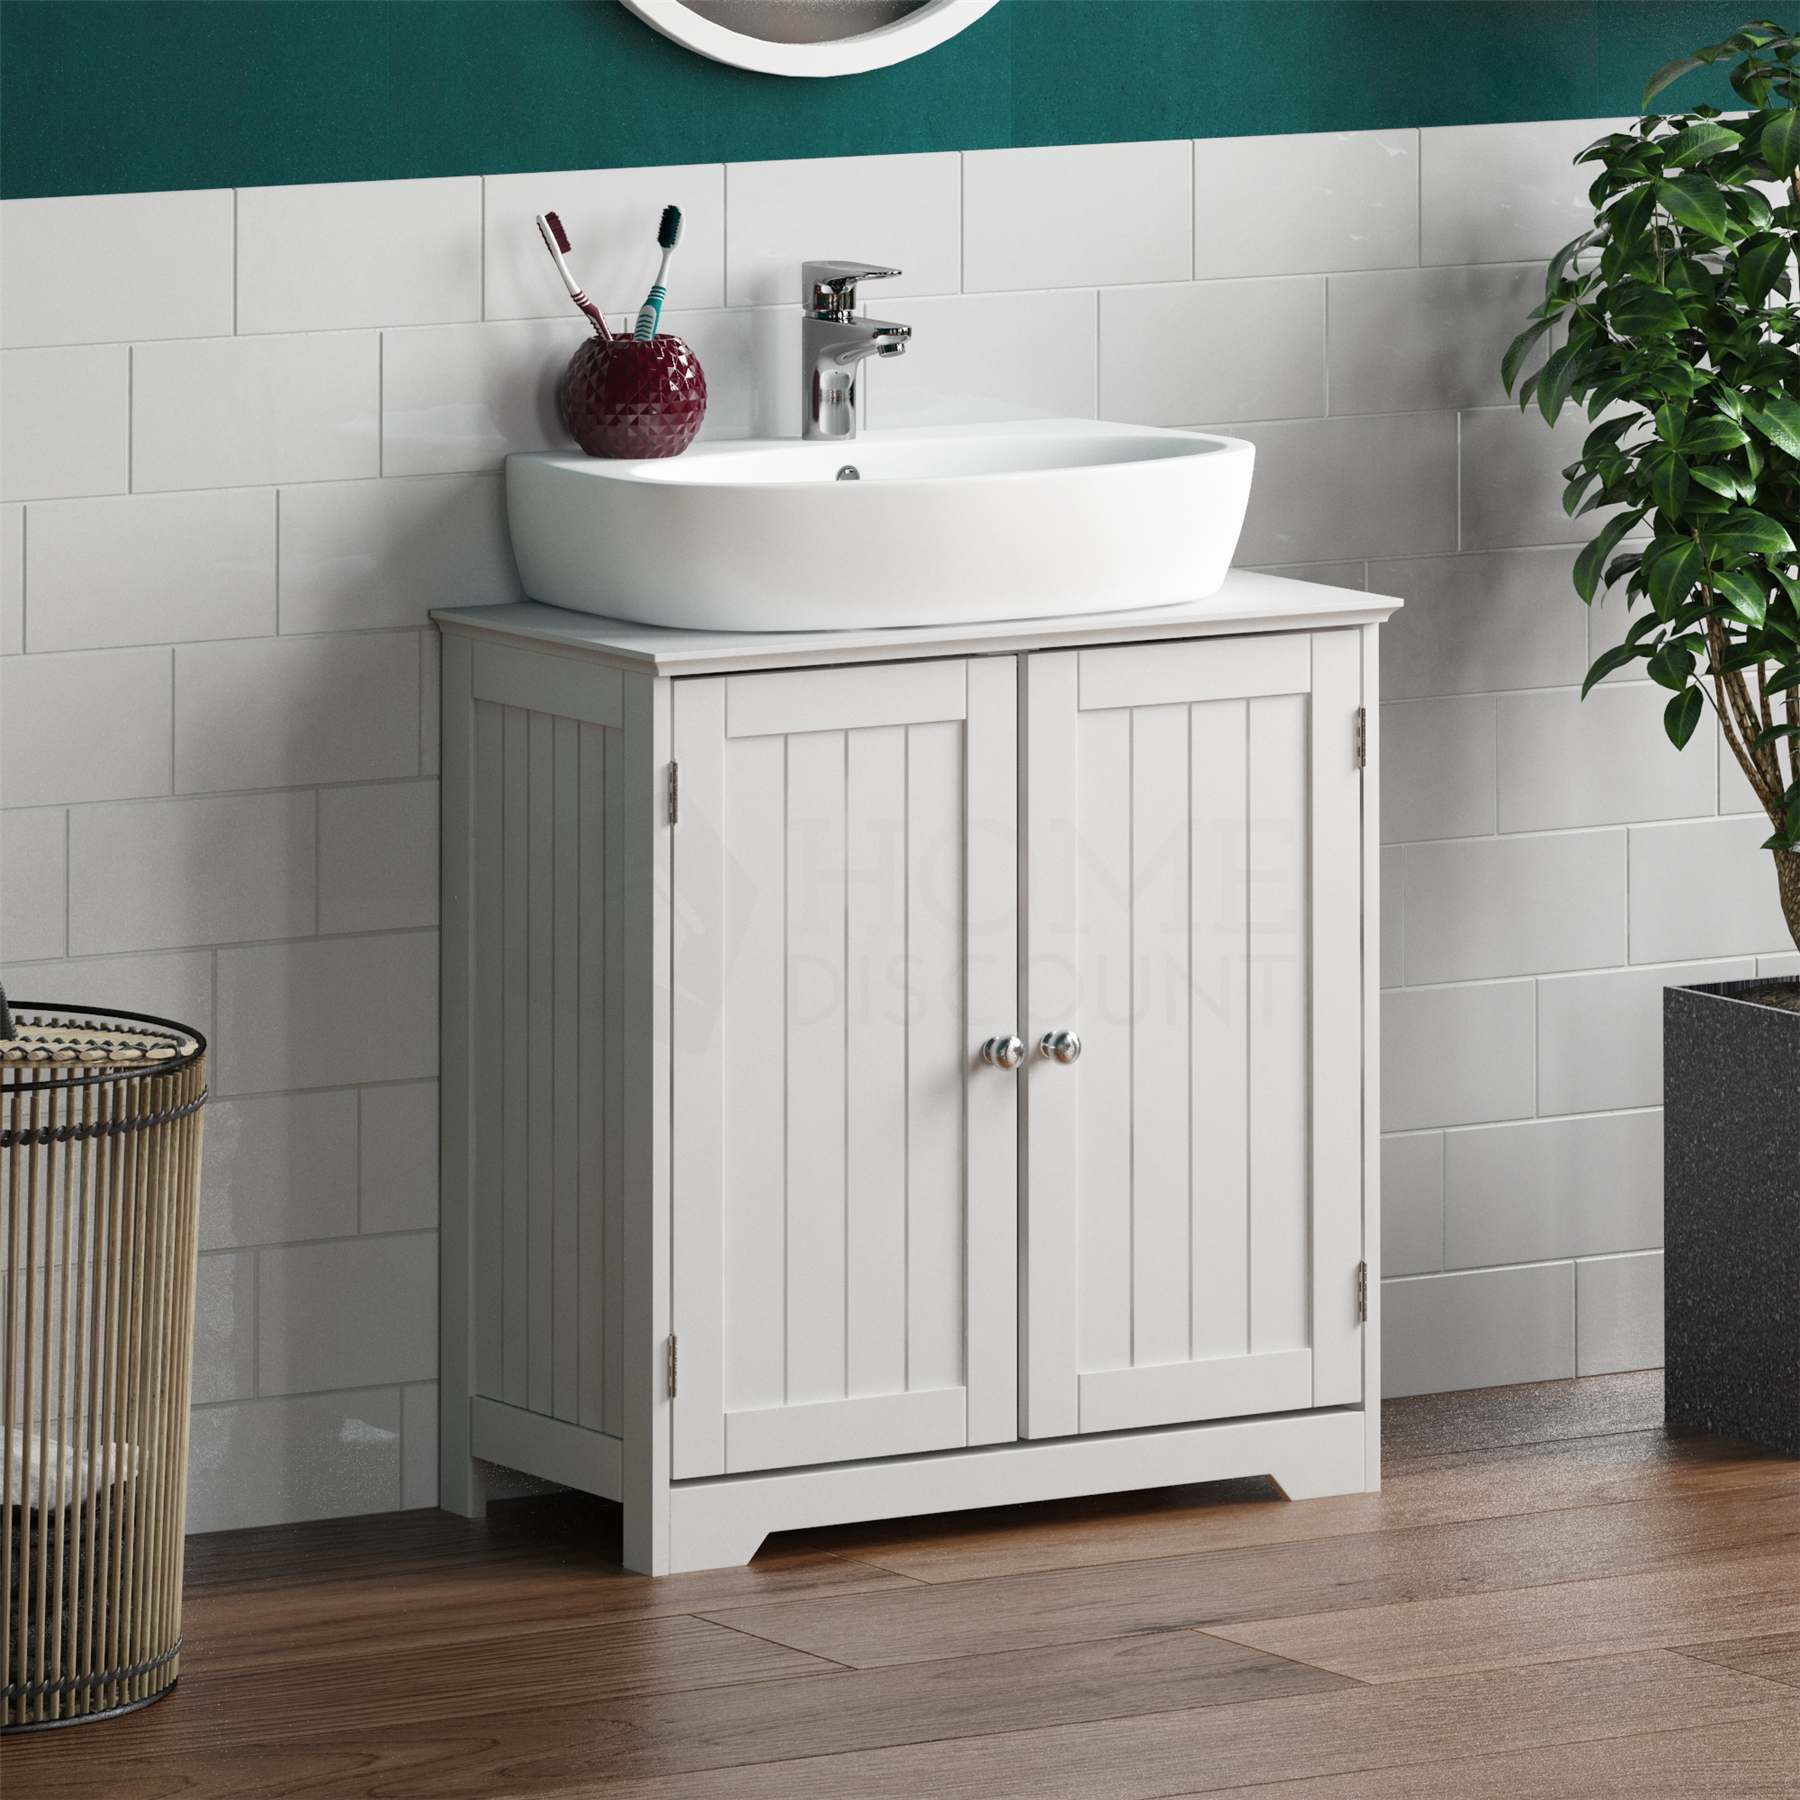 Priano Bathroom Sink Cabinet Under Basin Vanity Storage Cupboard Unit White 5055998405141 Ebay